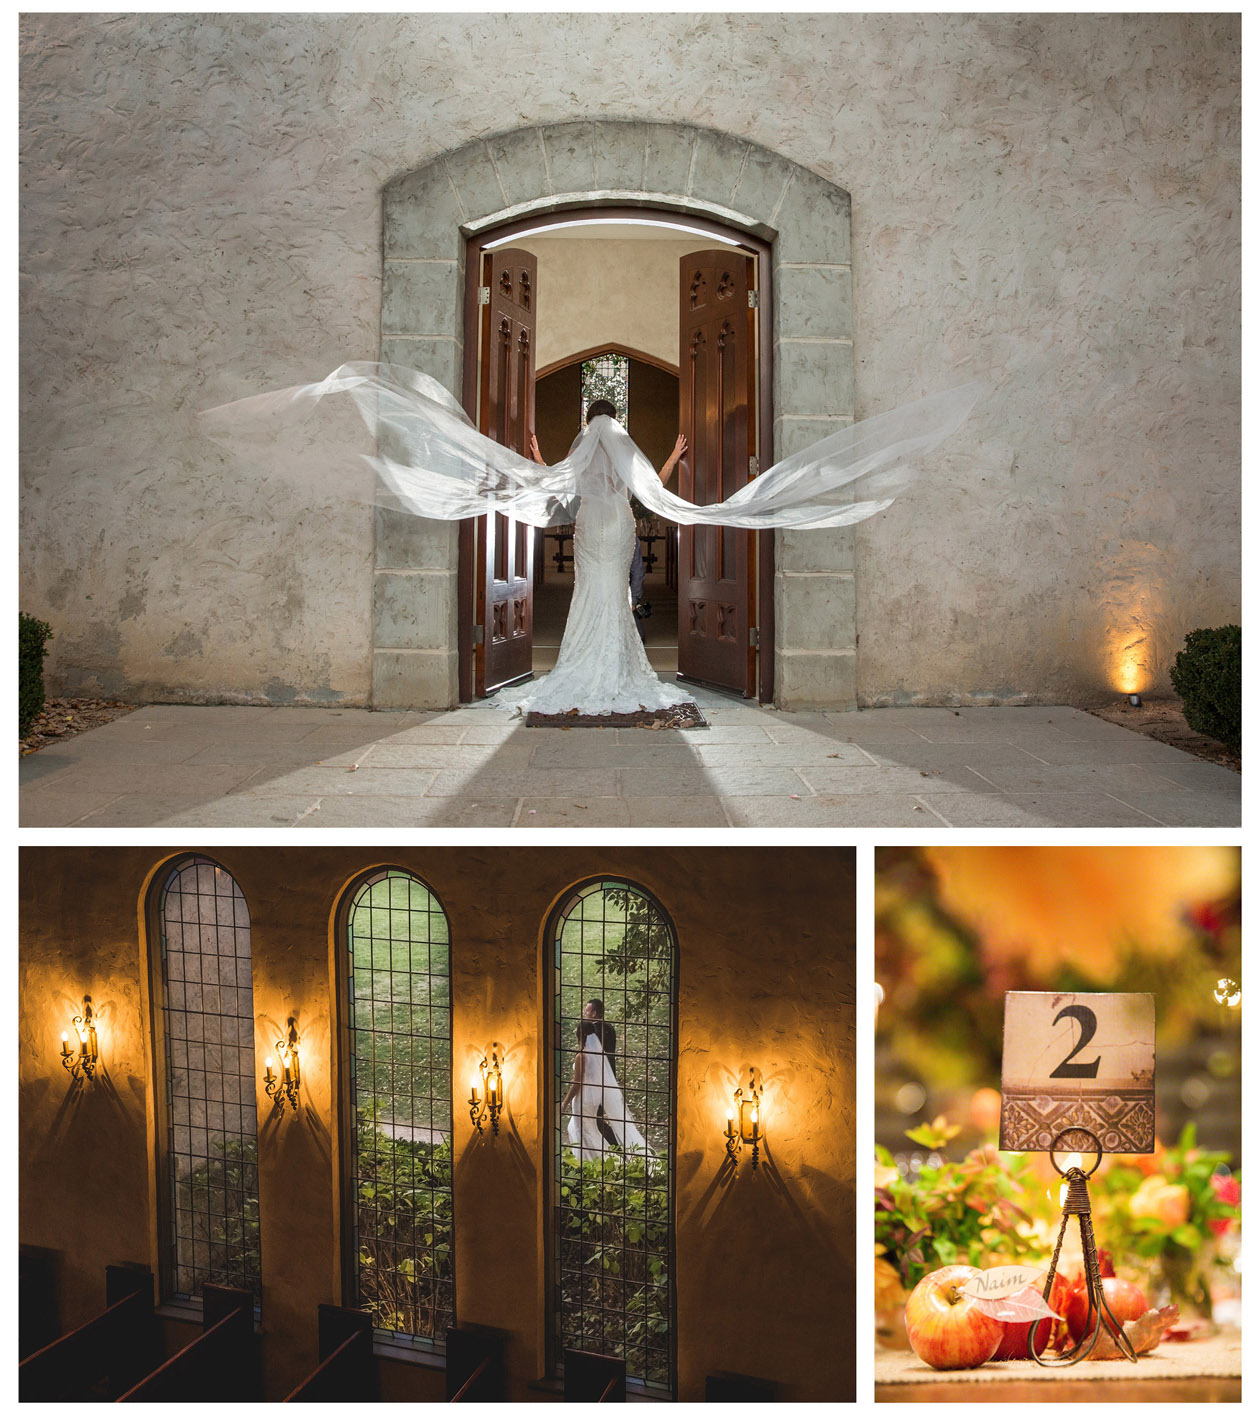 The Macedonian girl with a white veil took a lot of creative wedding photos after her beautiful wedding in Stones of the Yarra Valley